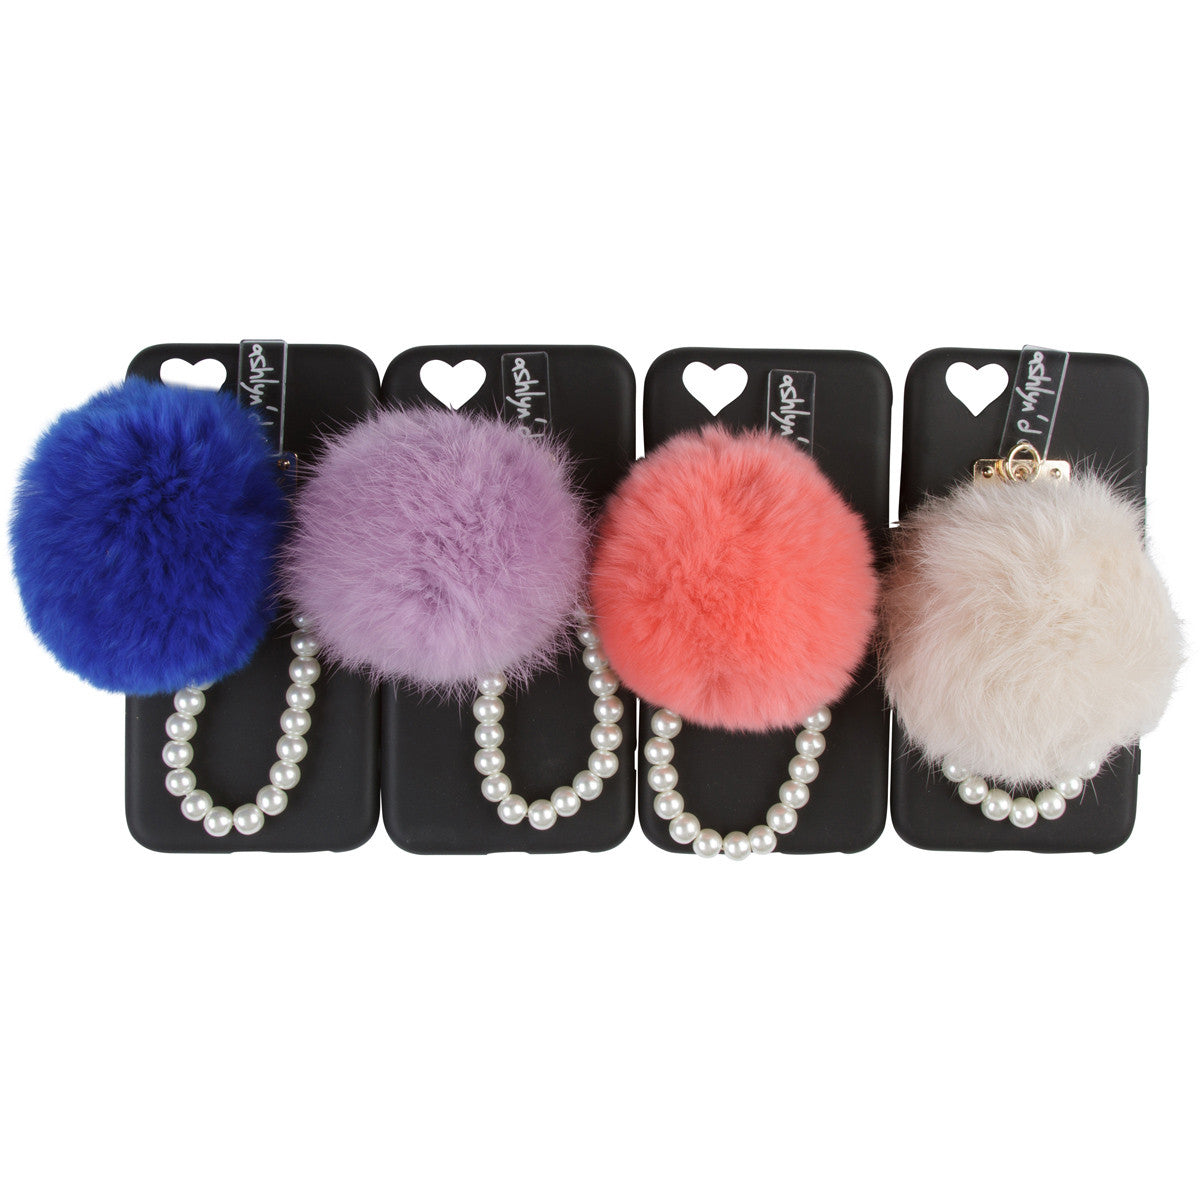 iPhone Case with Fur Ball and Pearl Strap - ashlyn